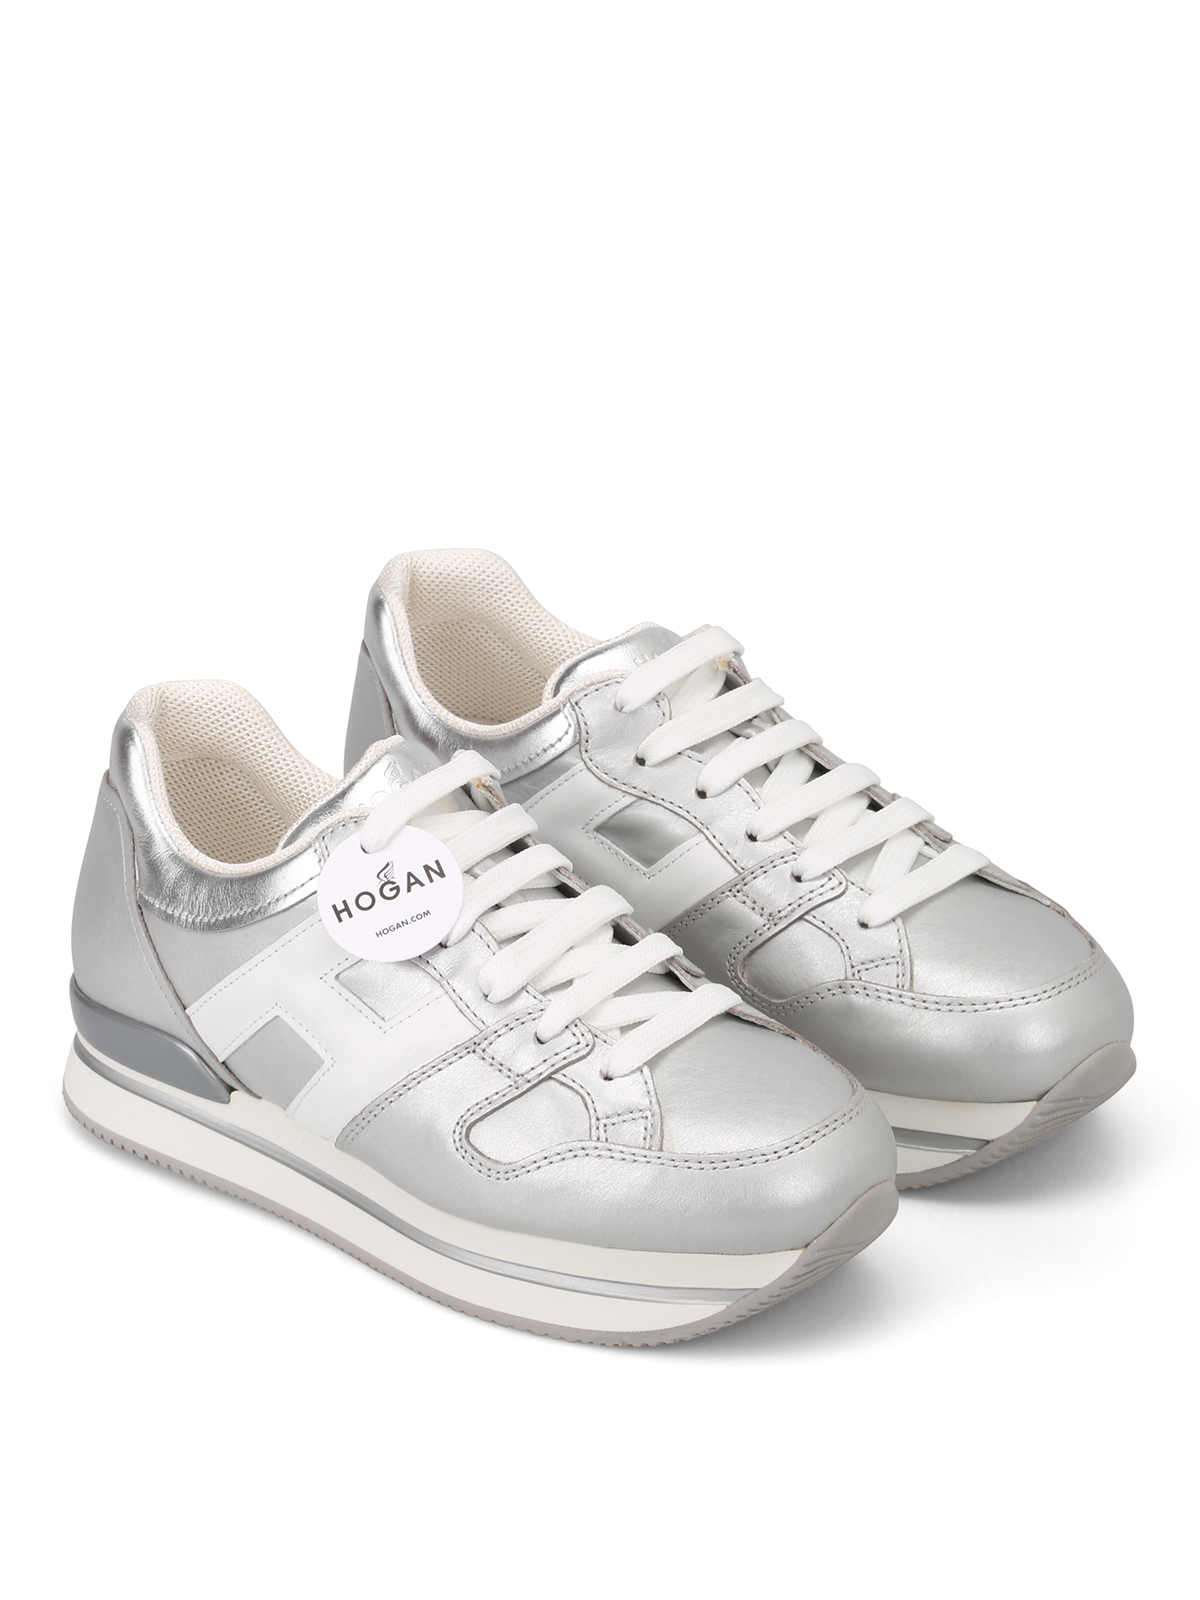 95c6eafd16 Hogan - Sneaker H222 argento e bianche - sneakers - HXW2220T548I8G0906